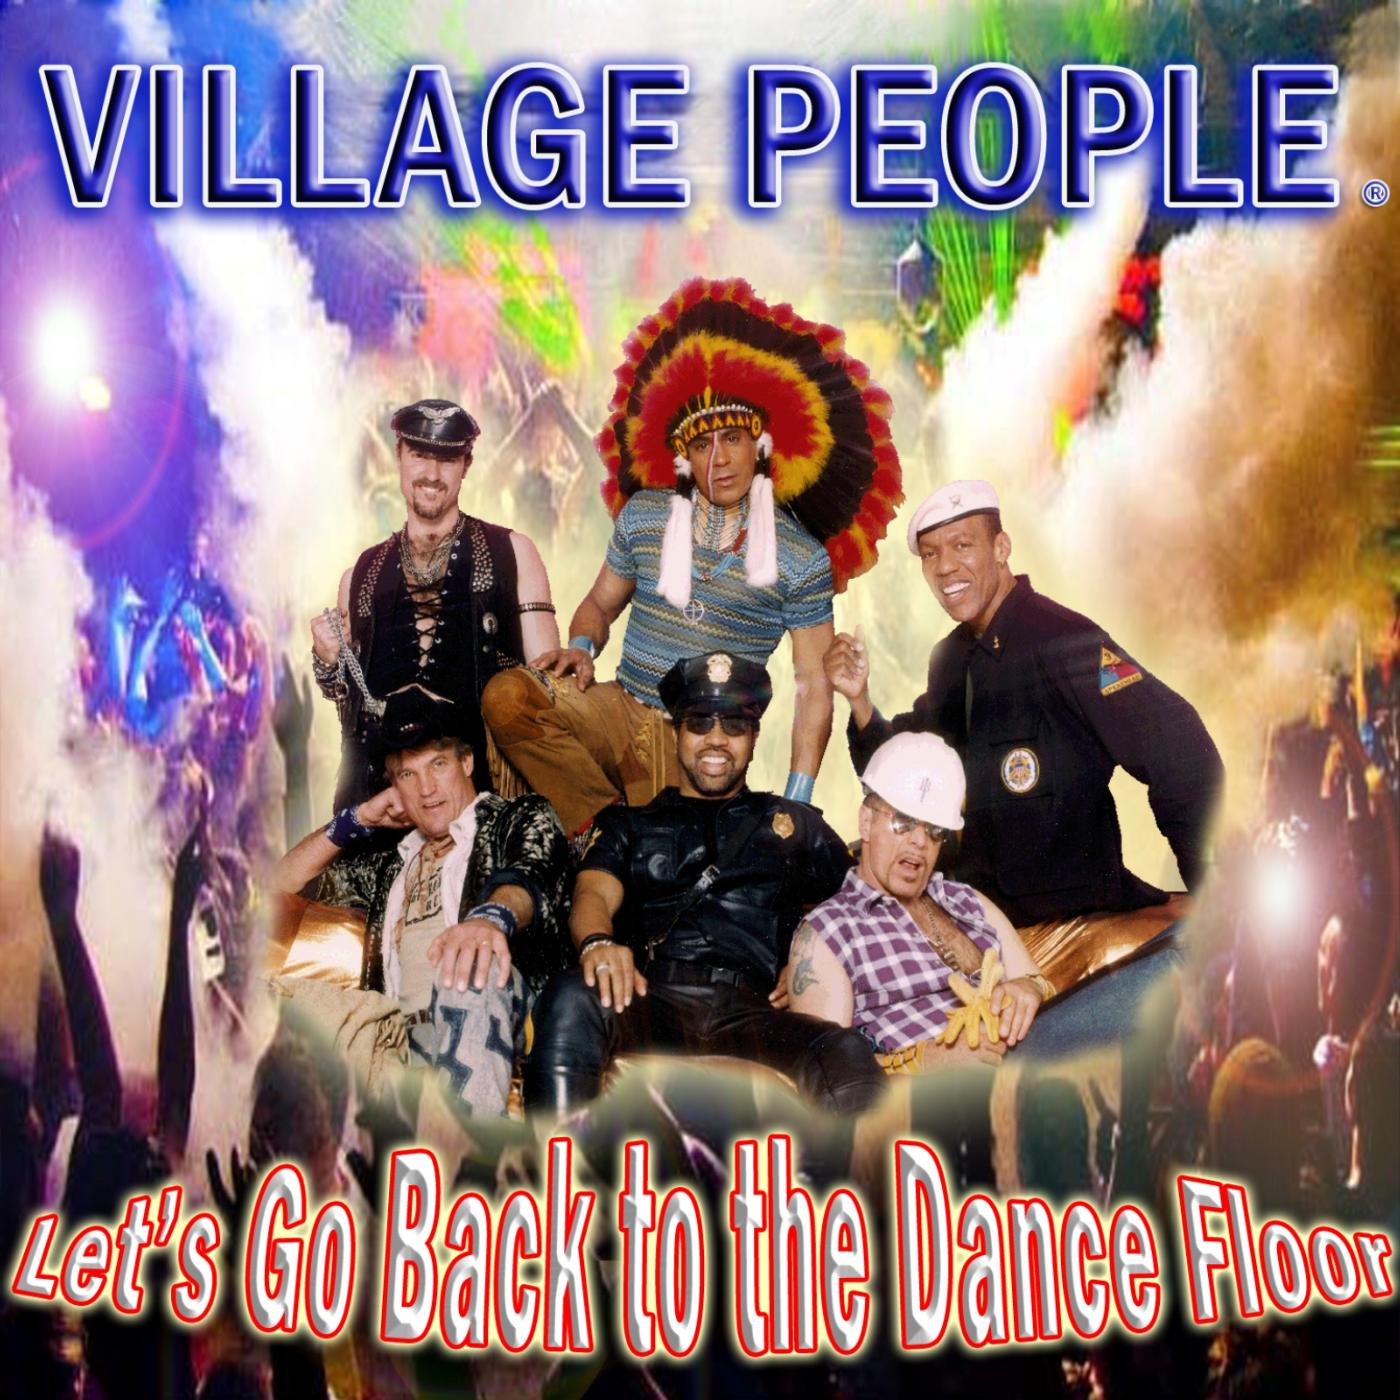 Let's Go Back to the Dance Floor( John LePage-Brian Cua Radio Mix)